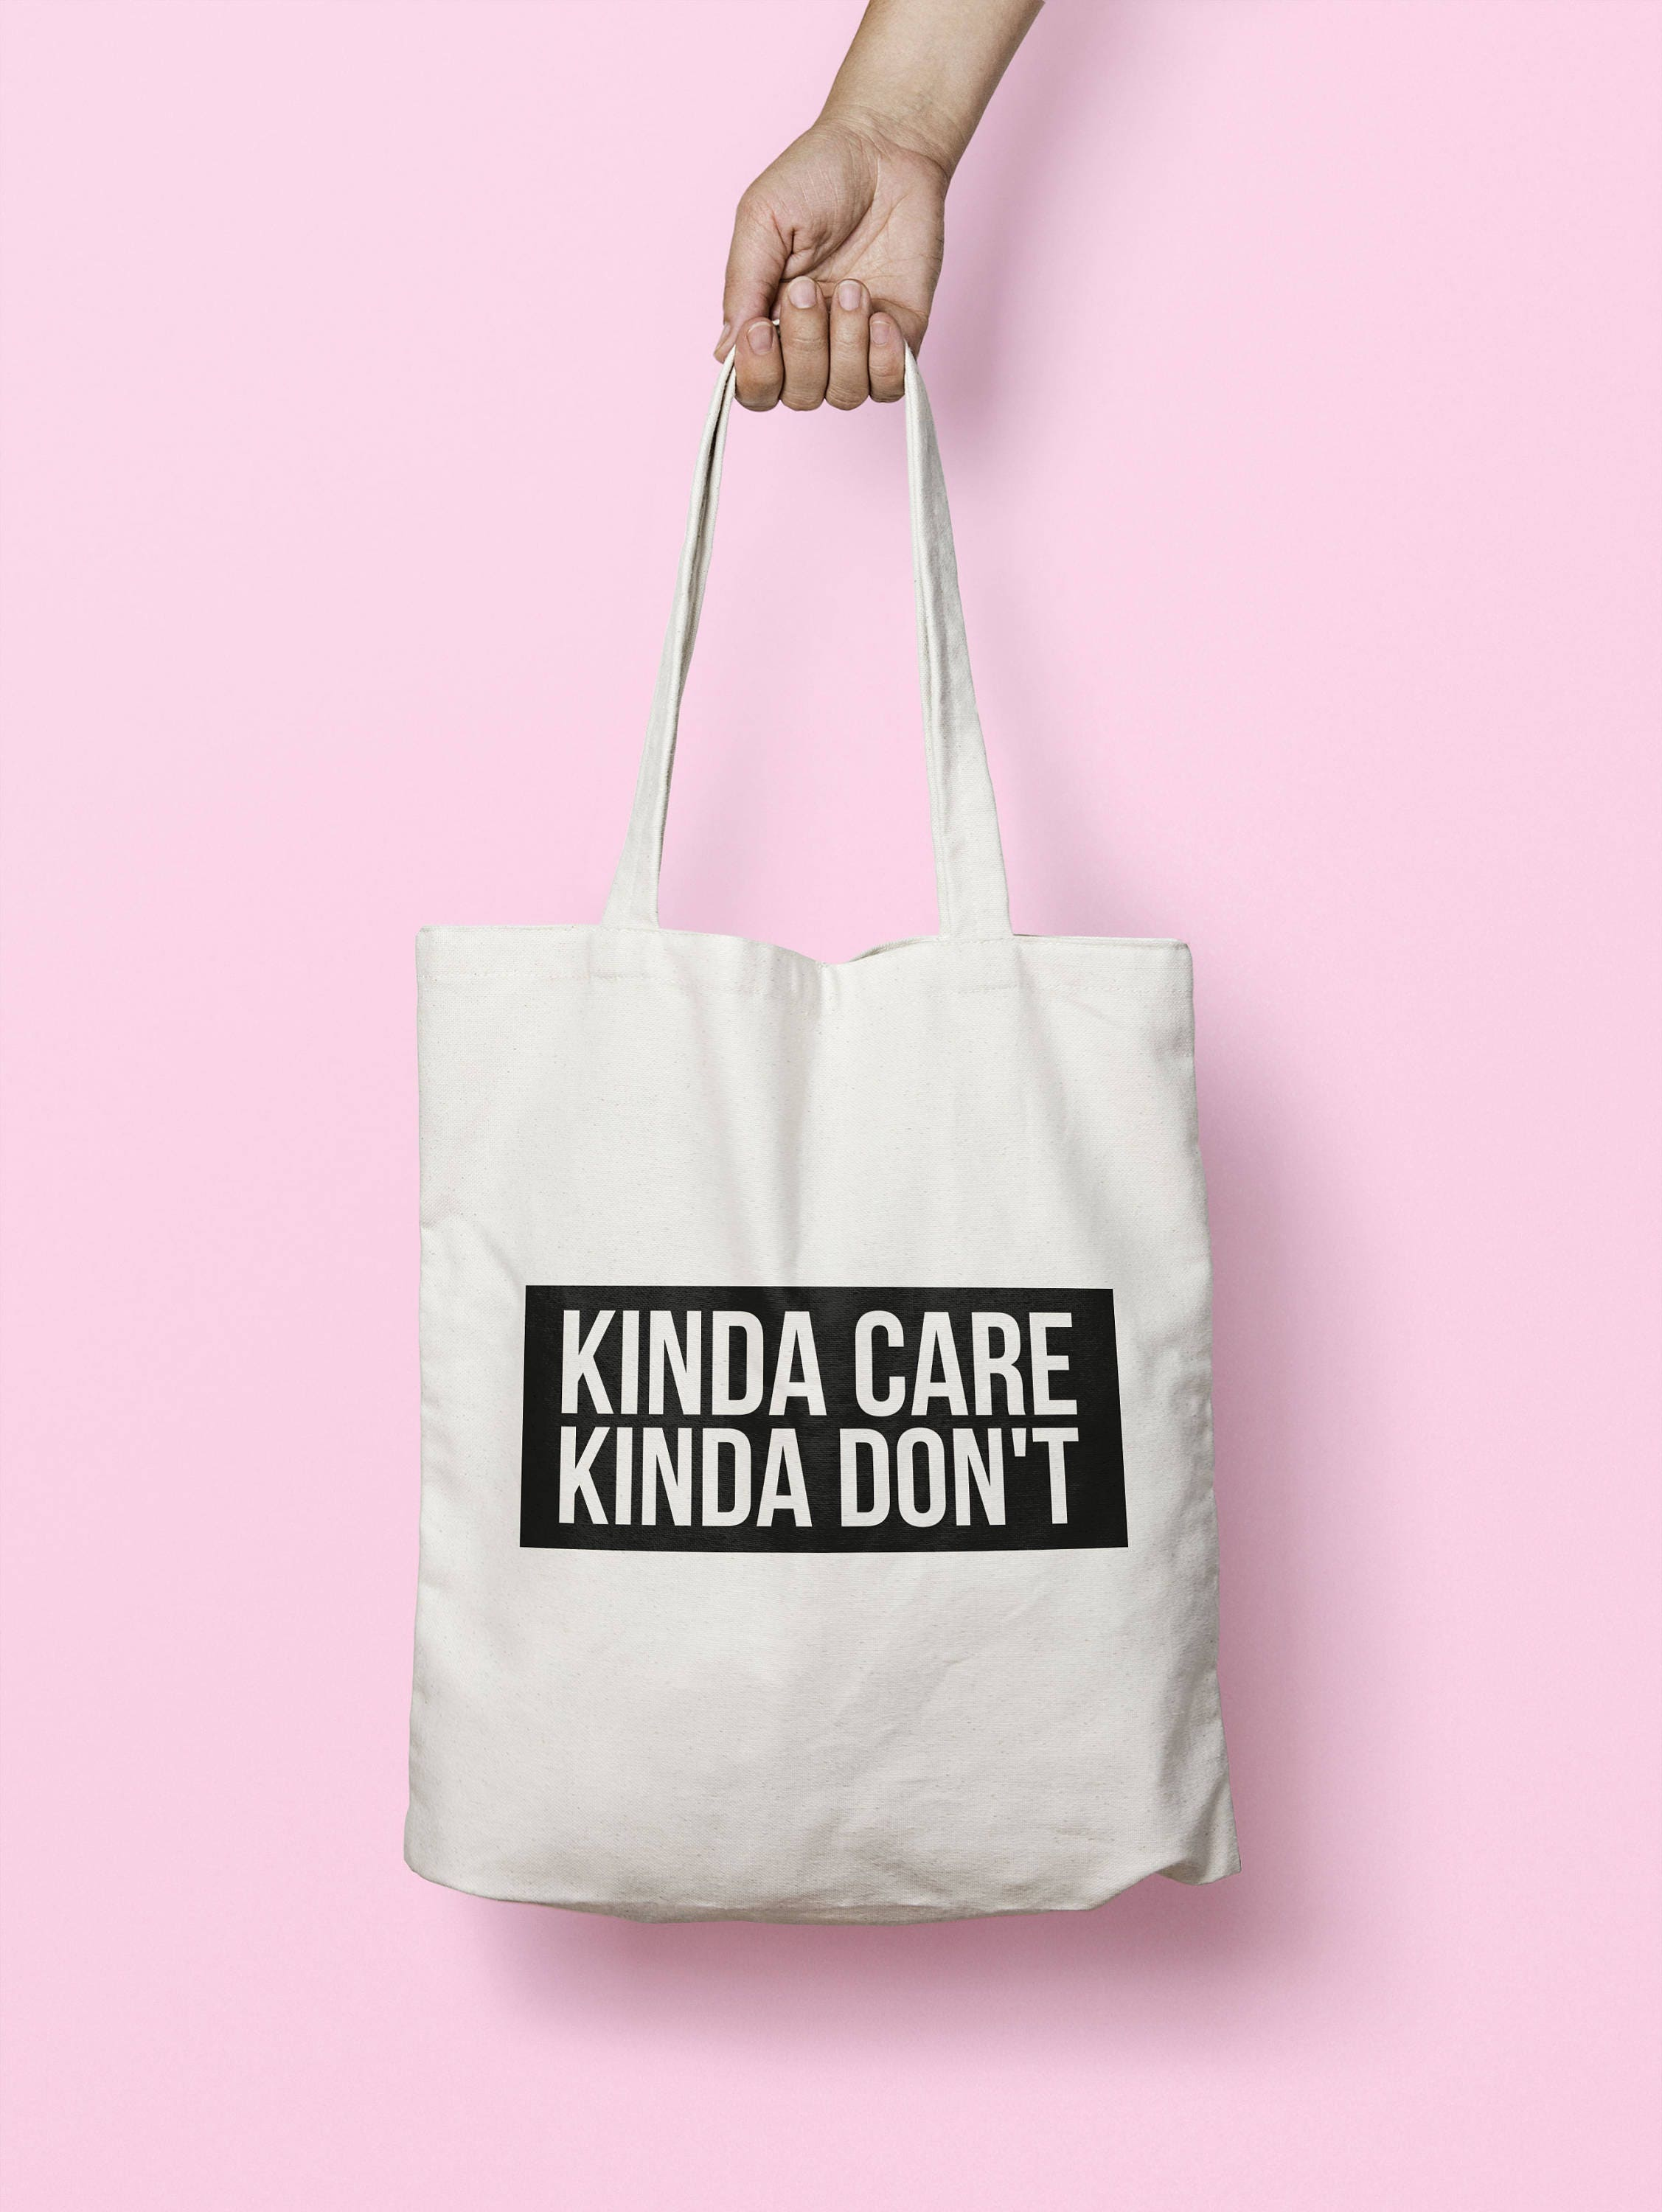 Kinda Care Kinda Don\'t Tote Bag Long Handles TB1674